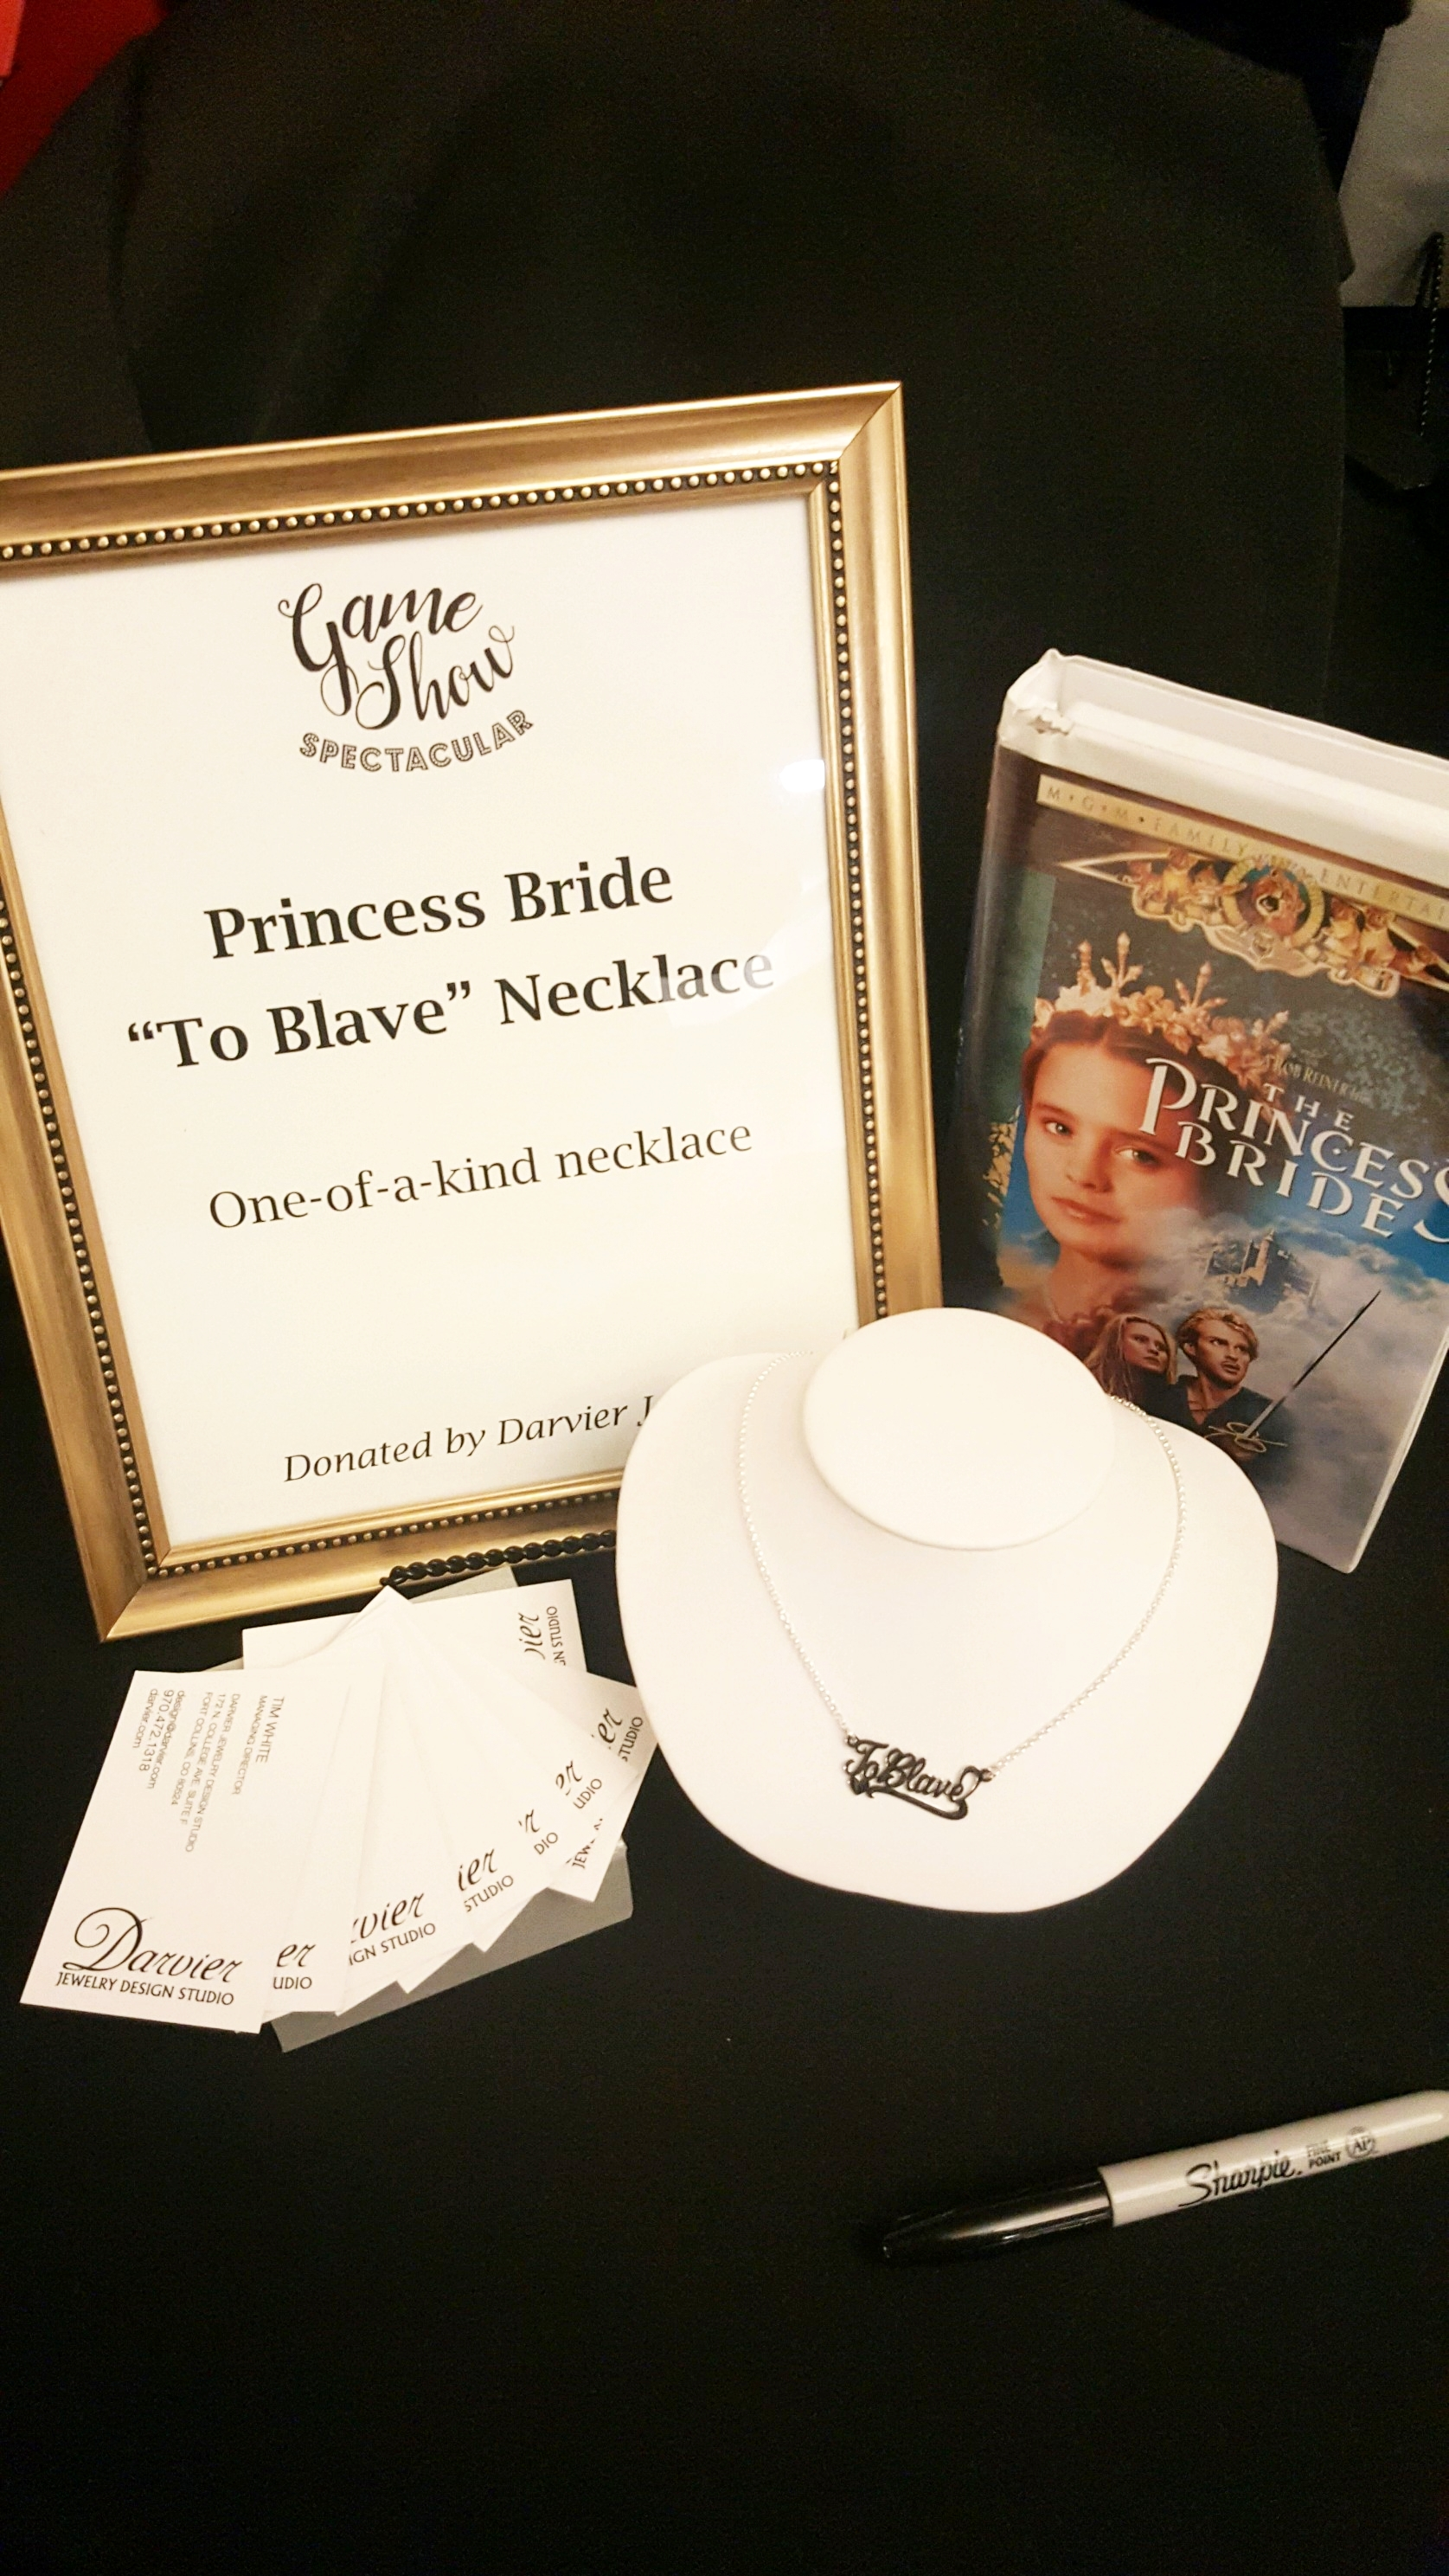 darvier-to- blave-charity-auction-princess-bride.jpg